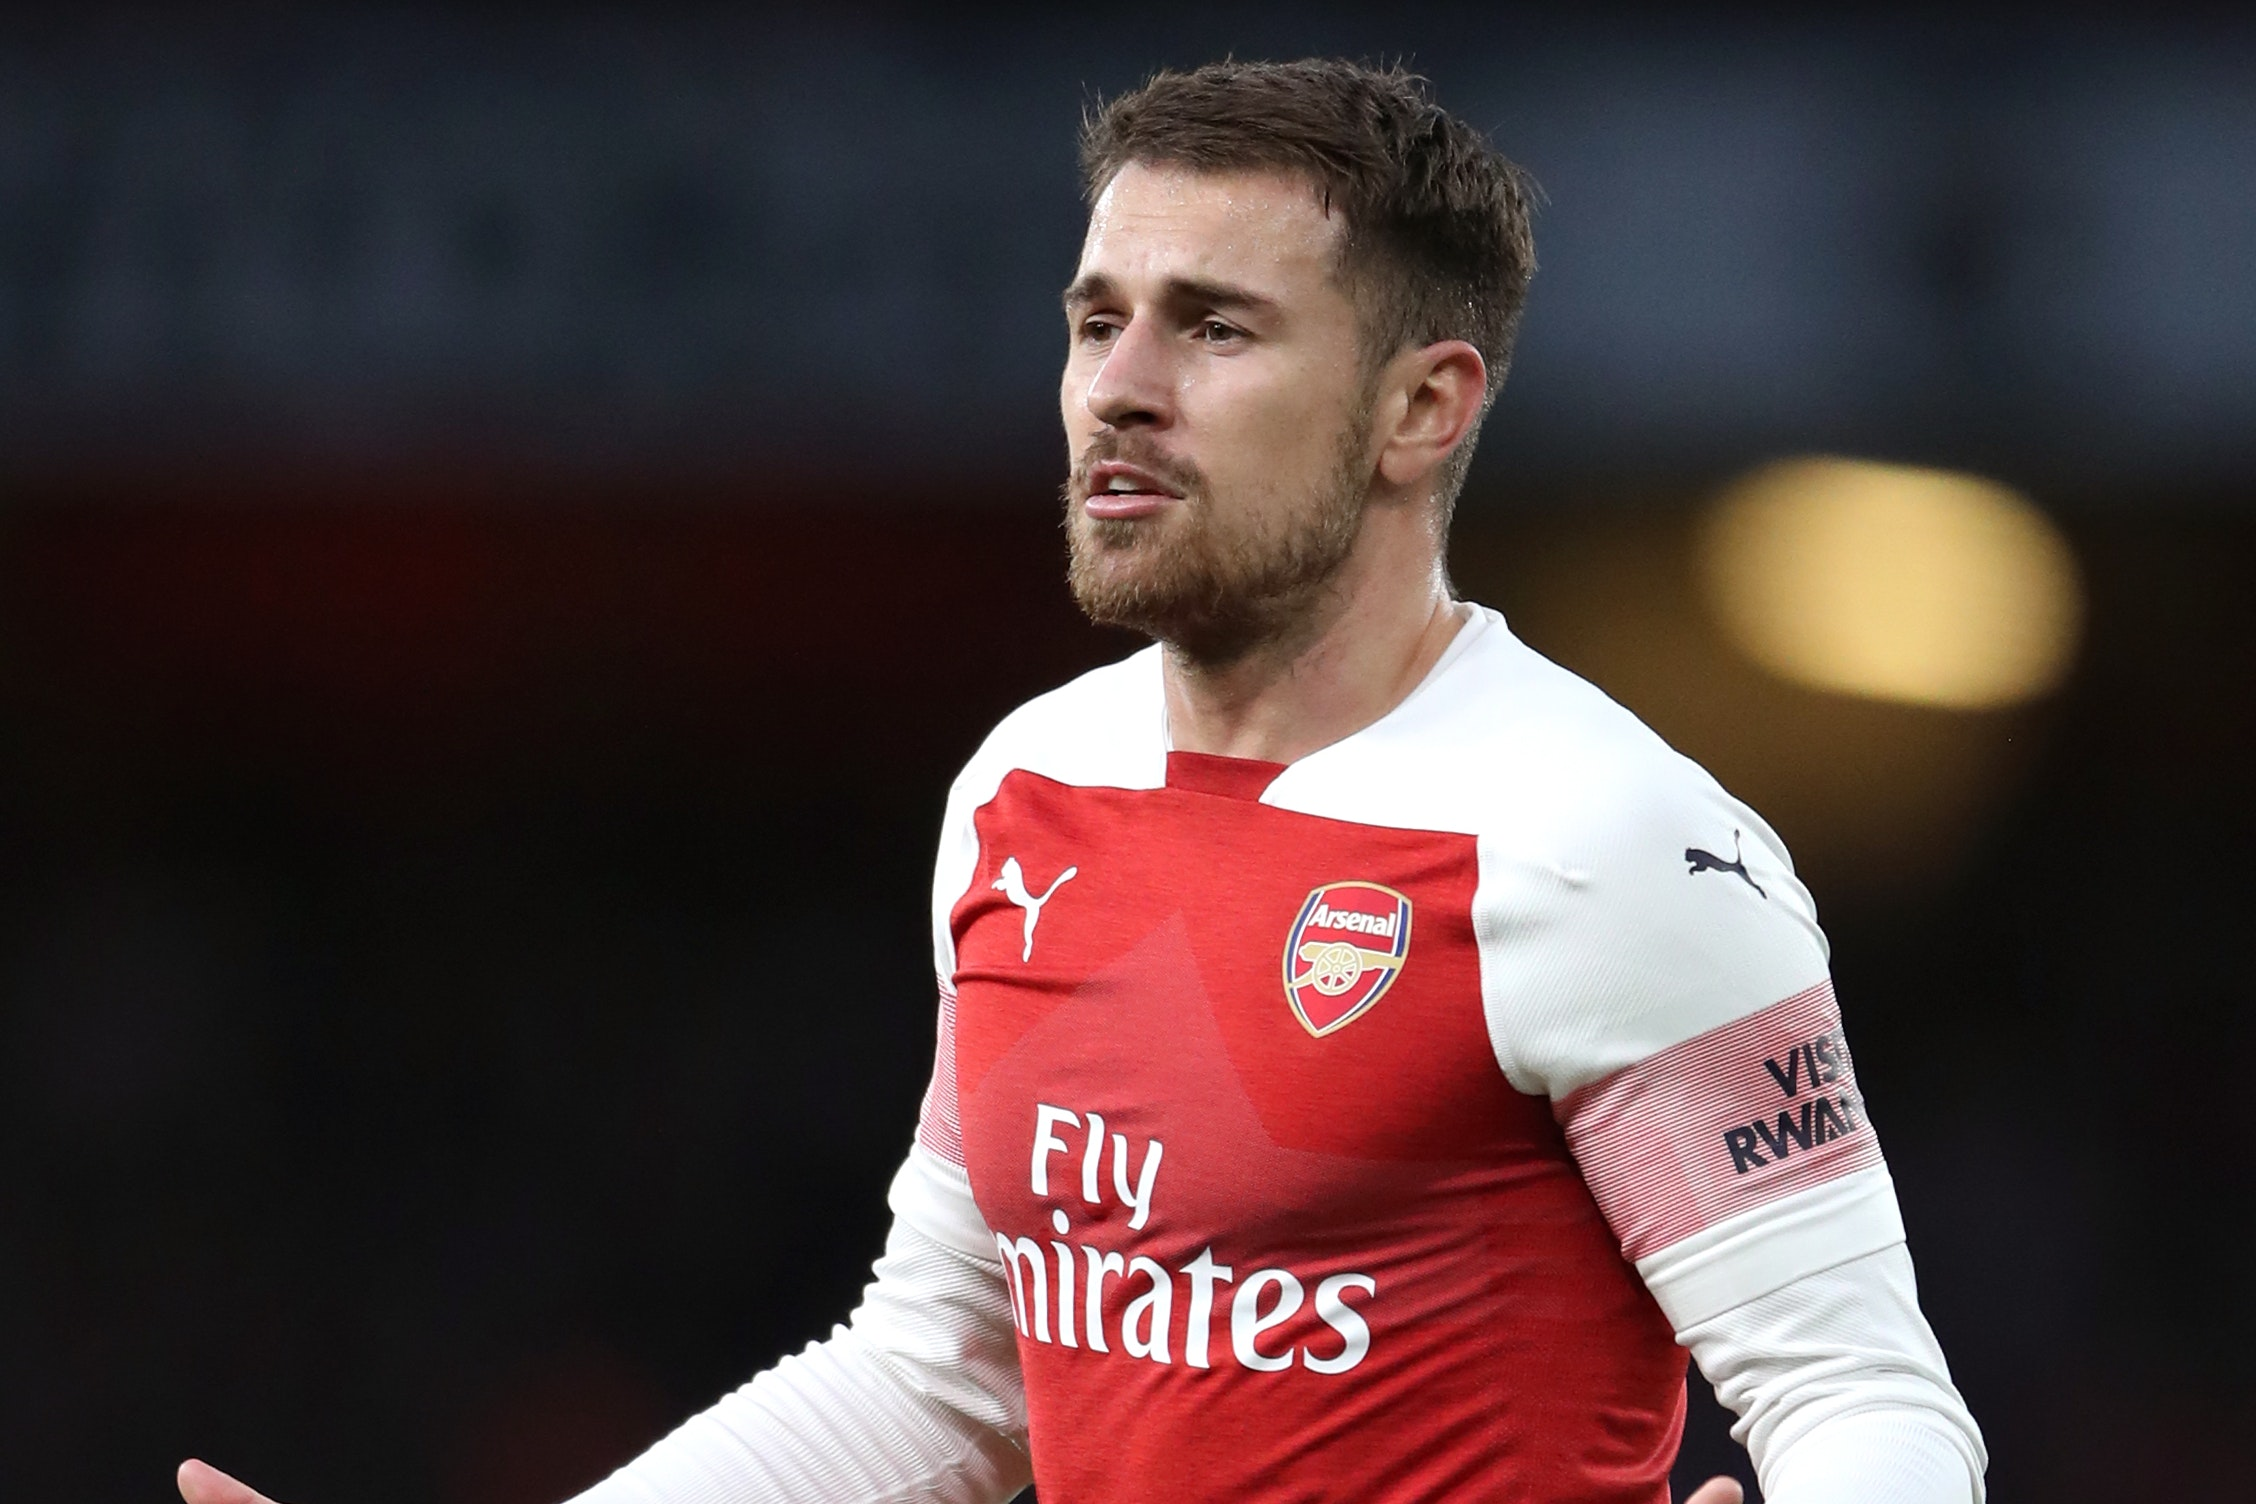 Arsenal's Aaron Ramsey is to join Juventus